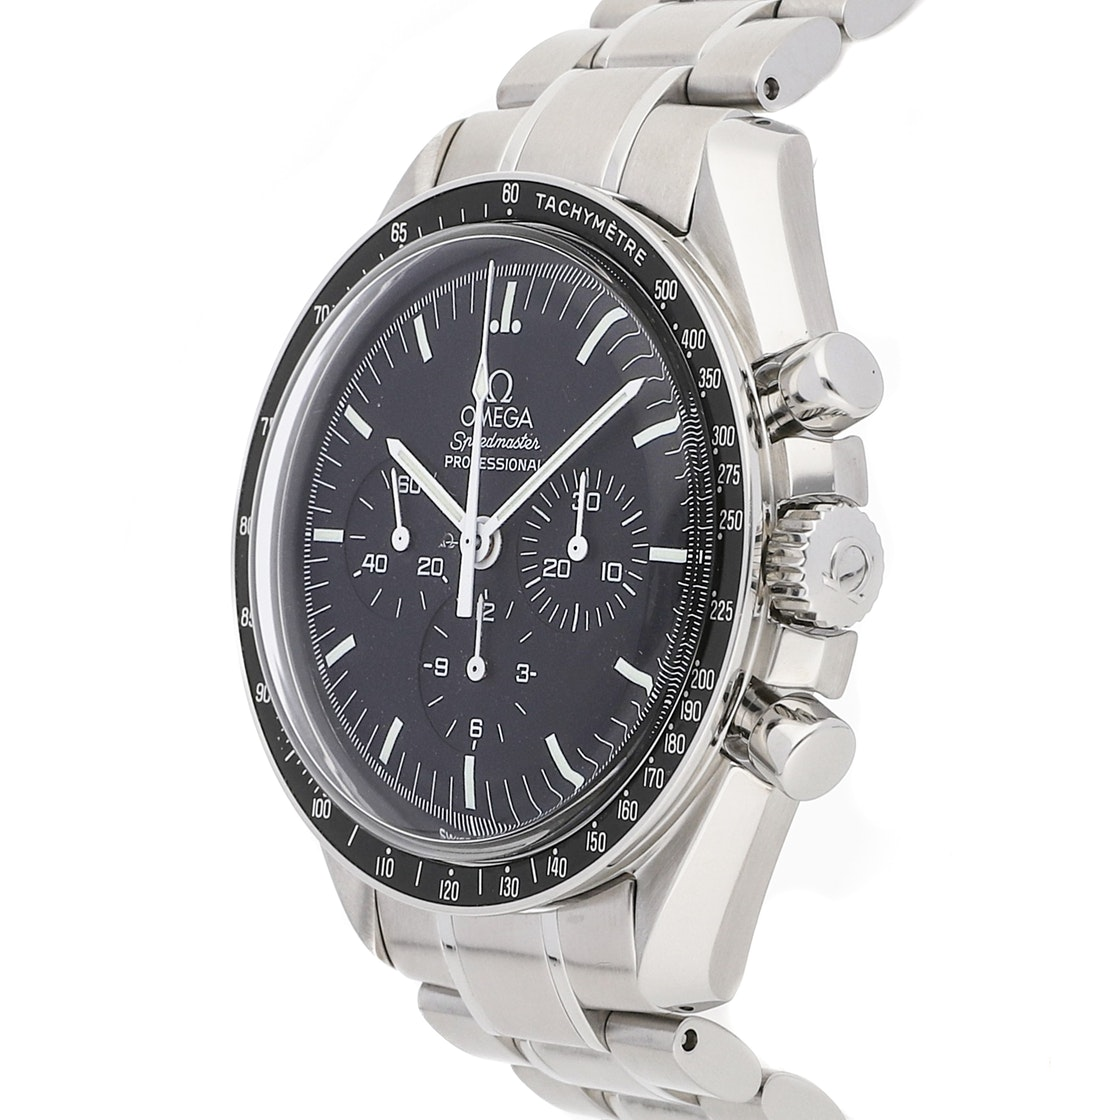 Omega Vintage Speedmaster Moon Watch Chronograph 3570.50.00